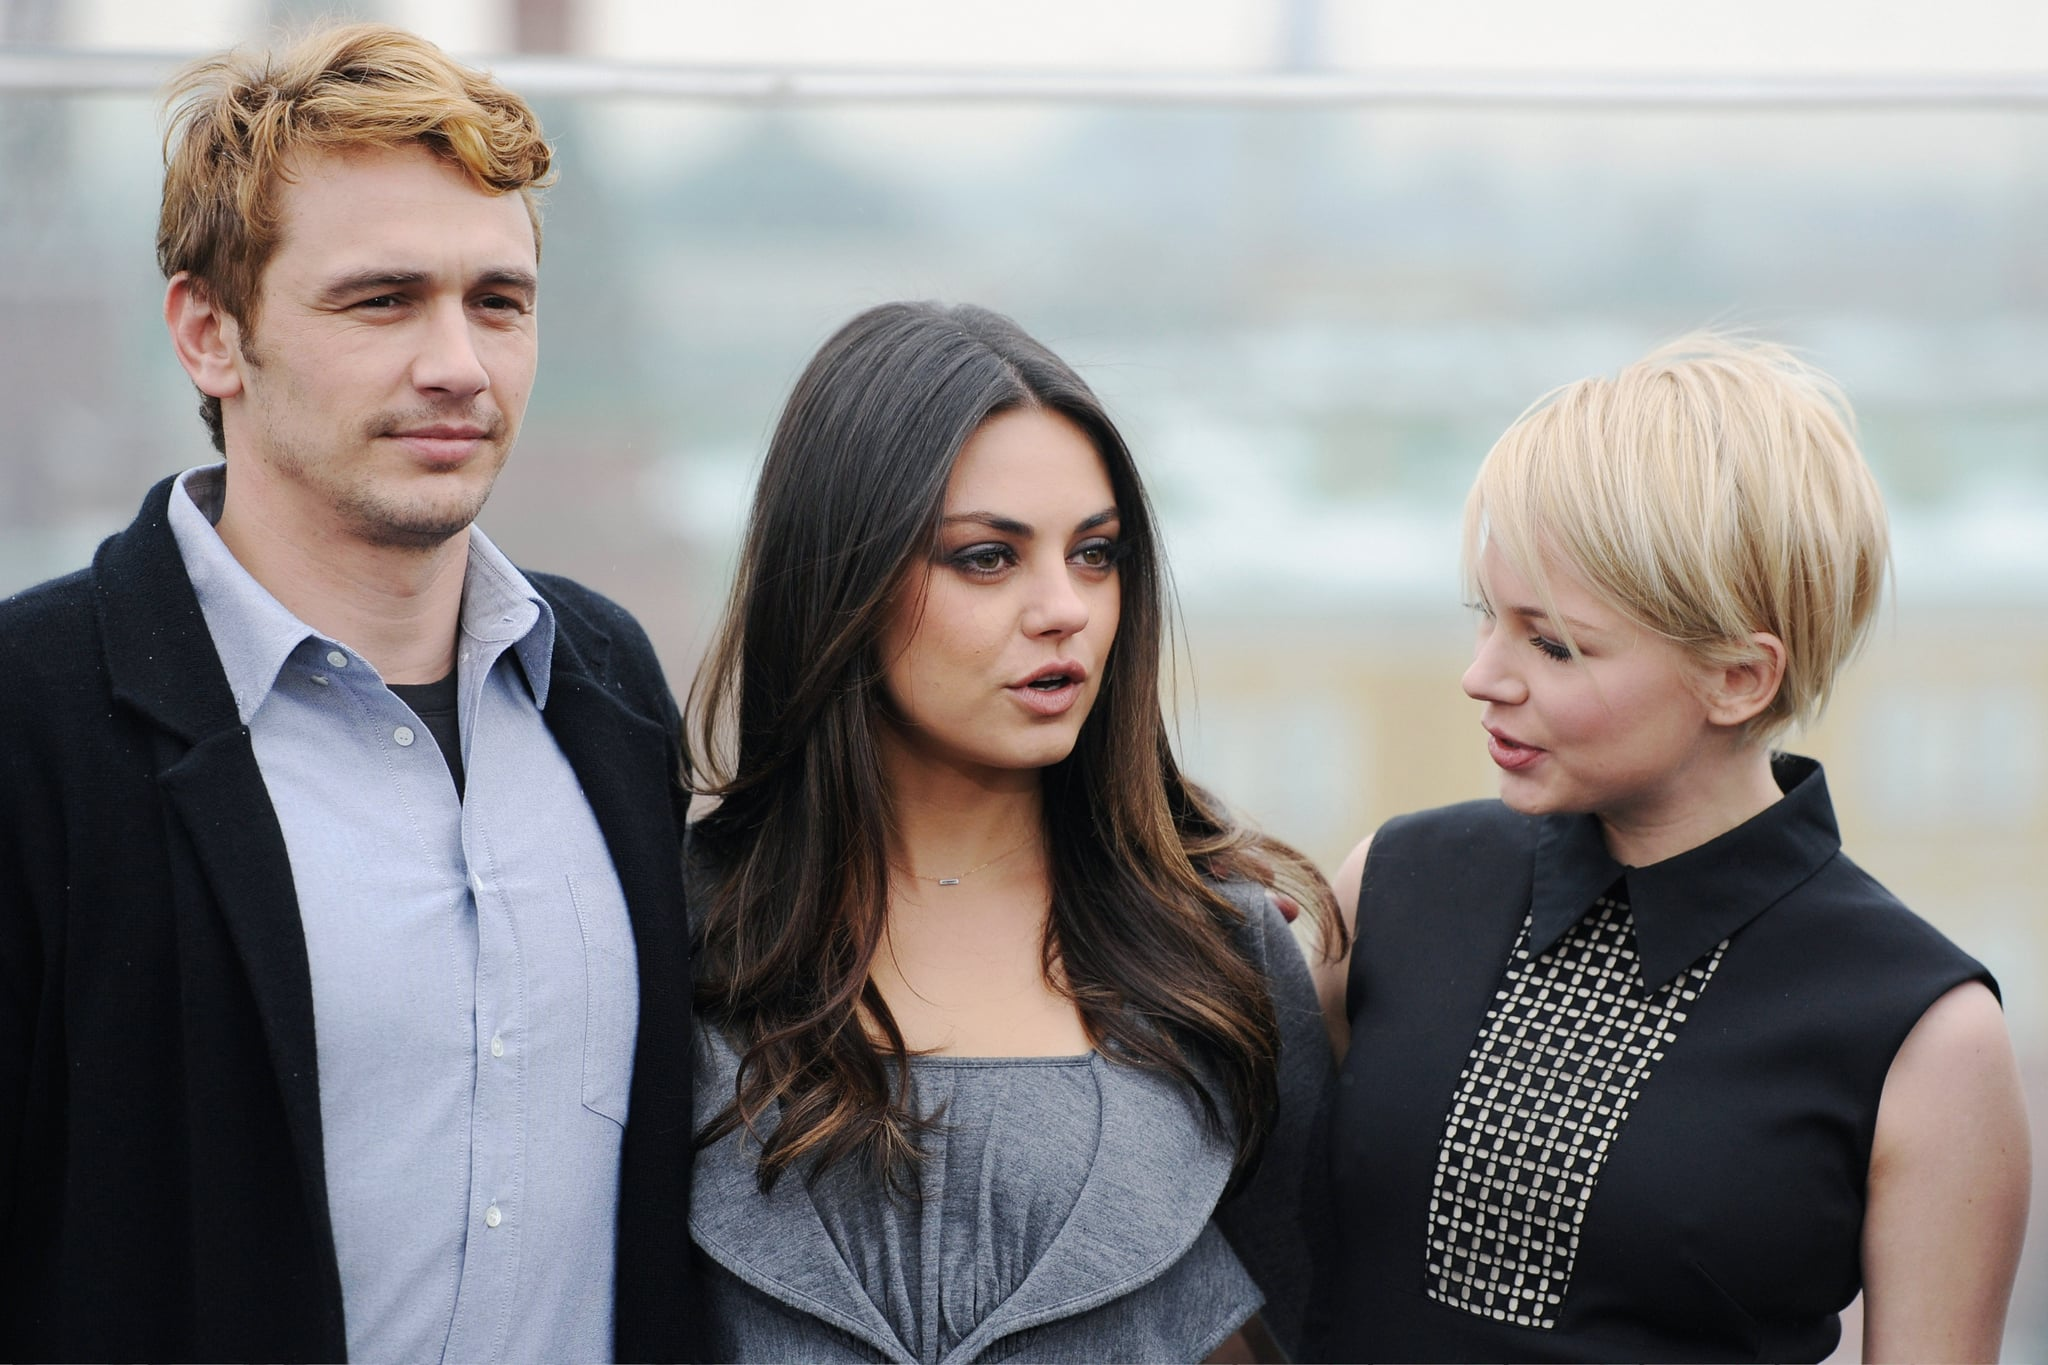 Michelle Williams and Mila Kunis got together with James Franco for an Oz the Great and Powerful photocall in Moscow.